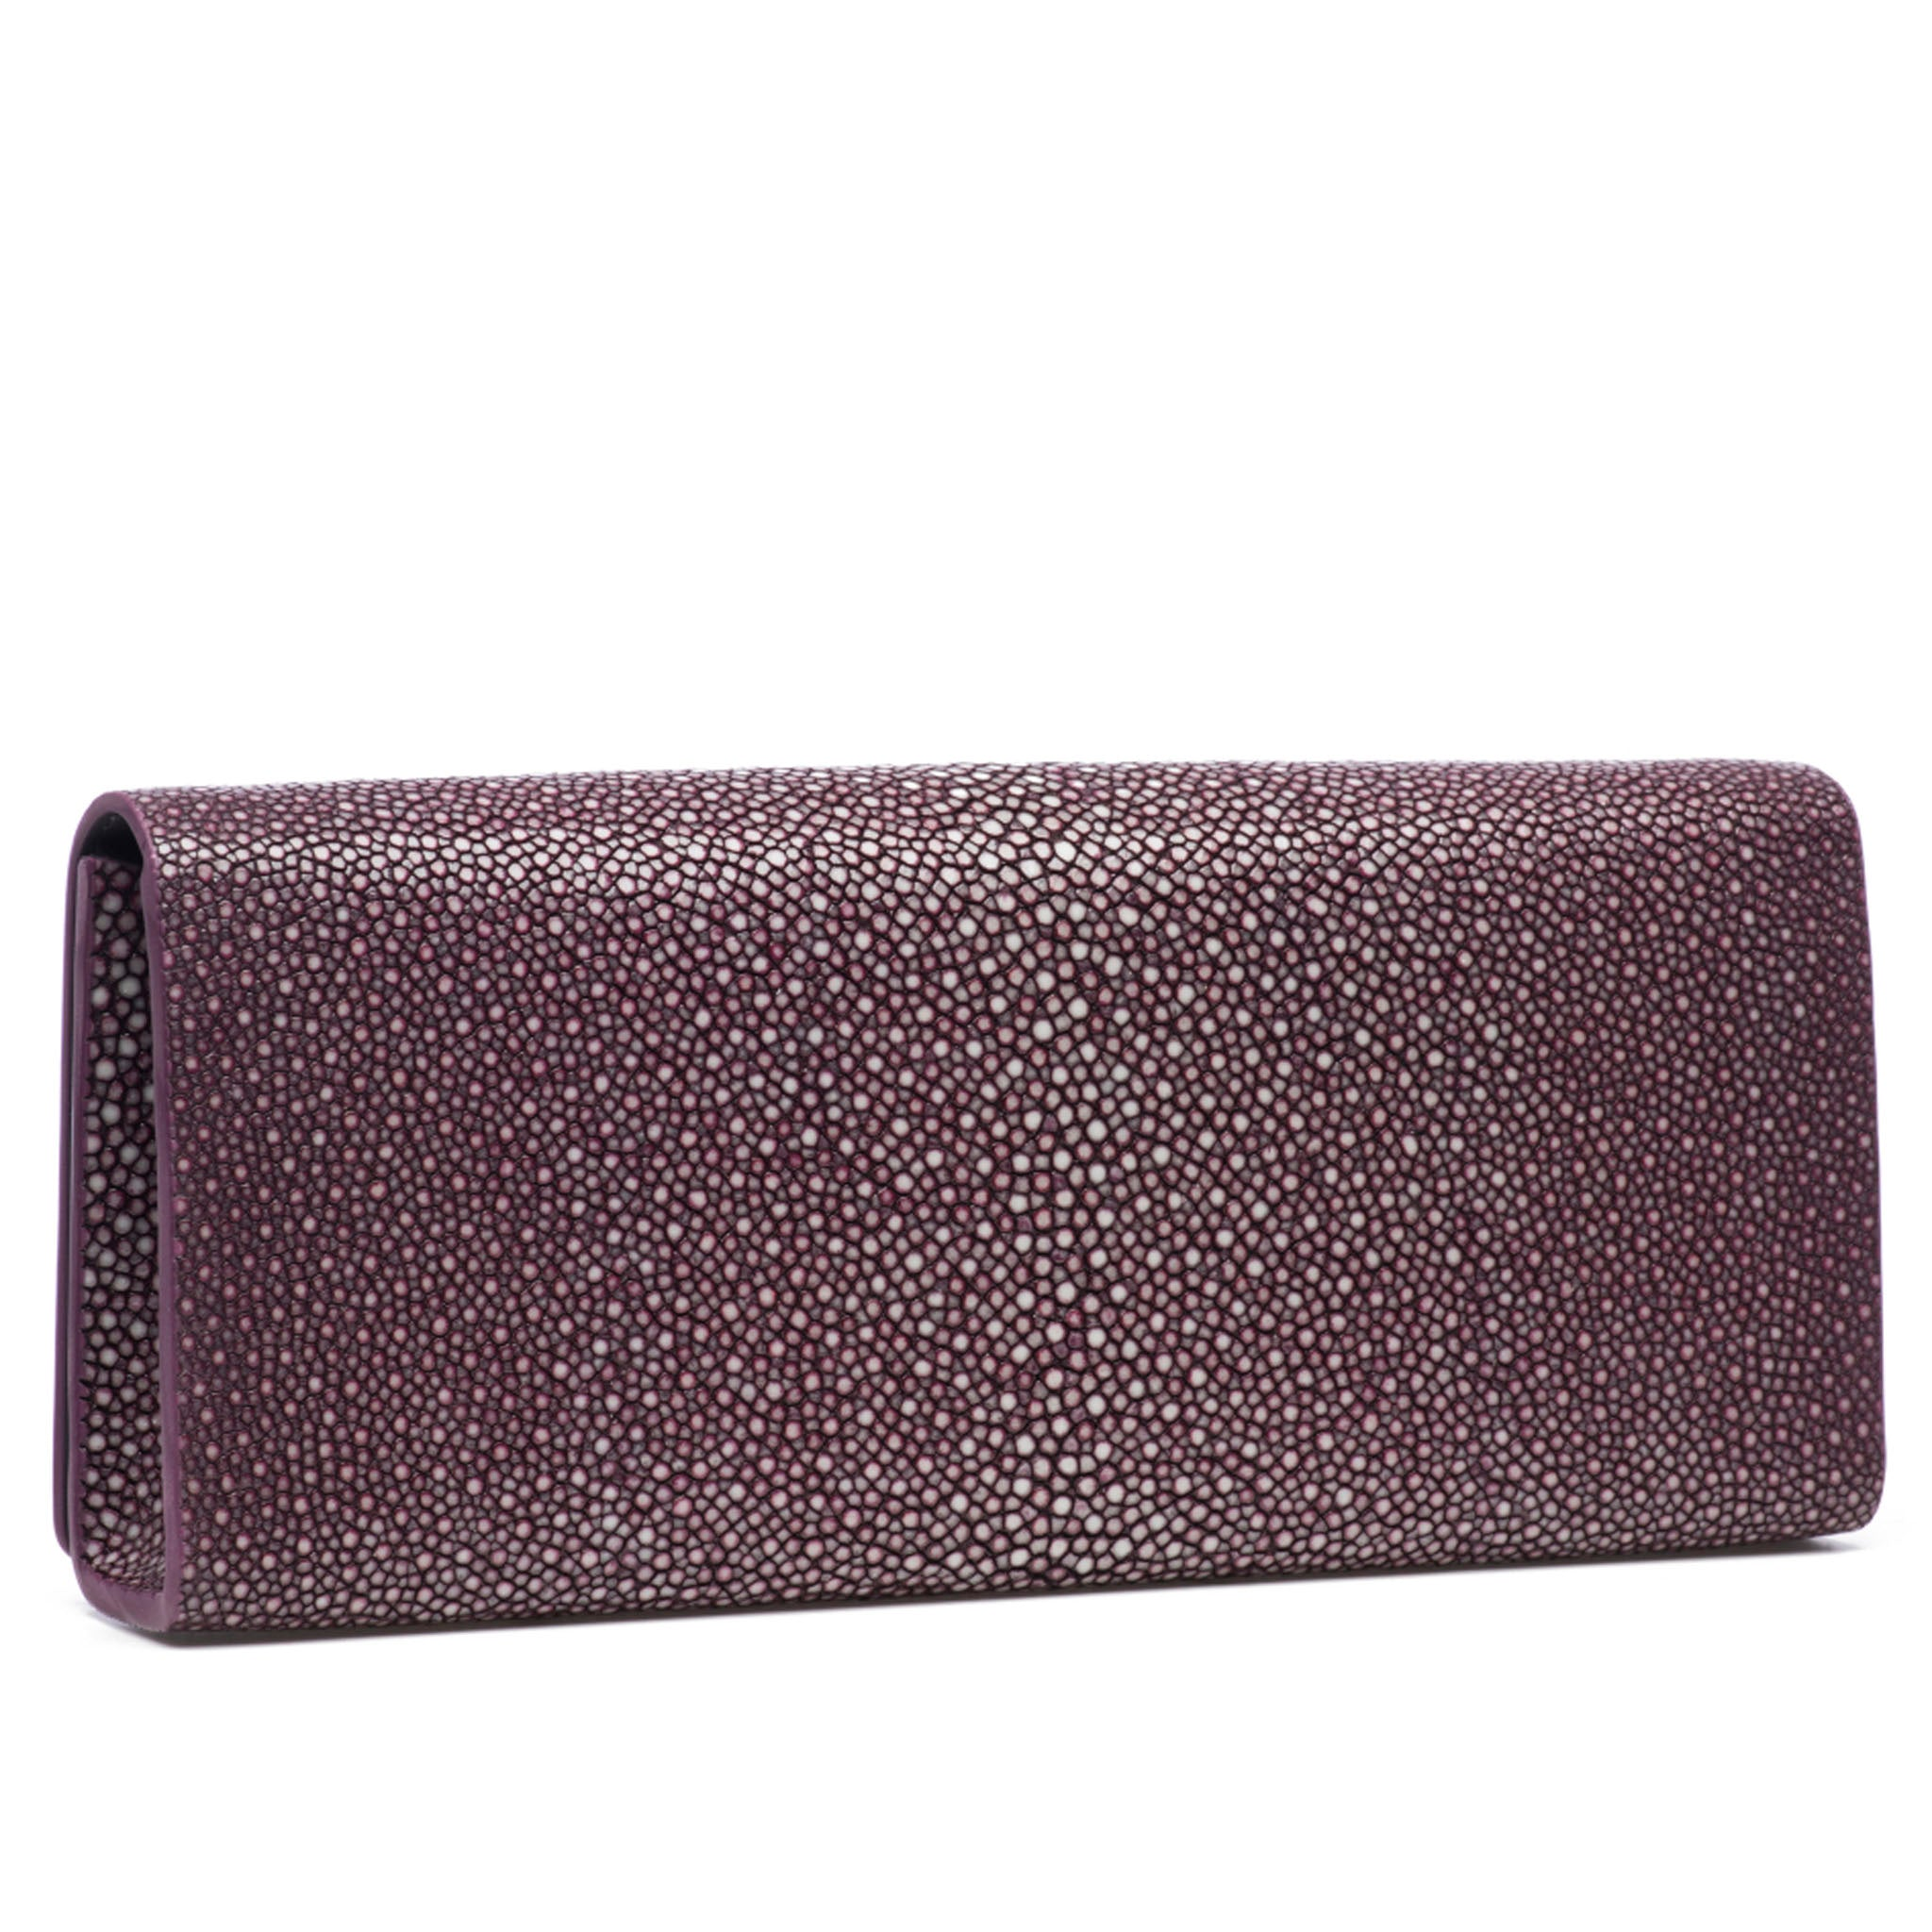 Plum Shagreen Clutch Bag Back View Cleo - Vivo Direct